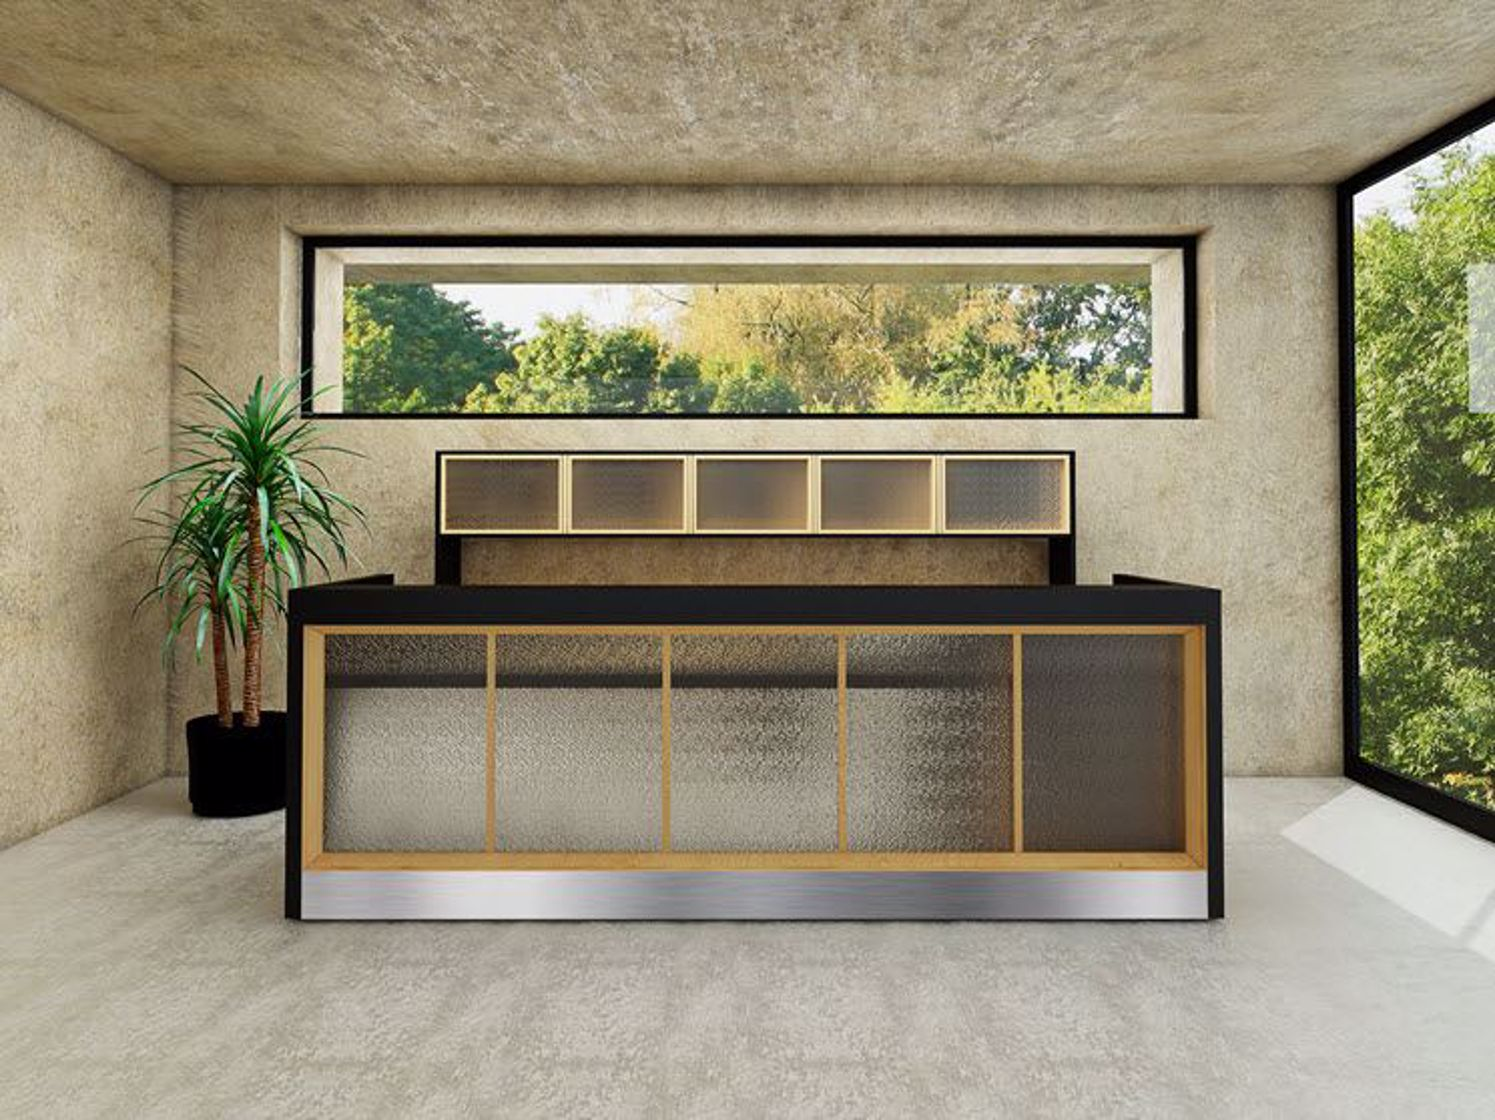 5 Ways to Buy a High-Quality Reception Station